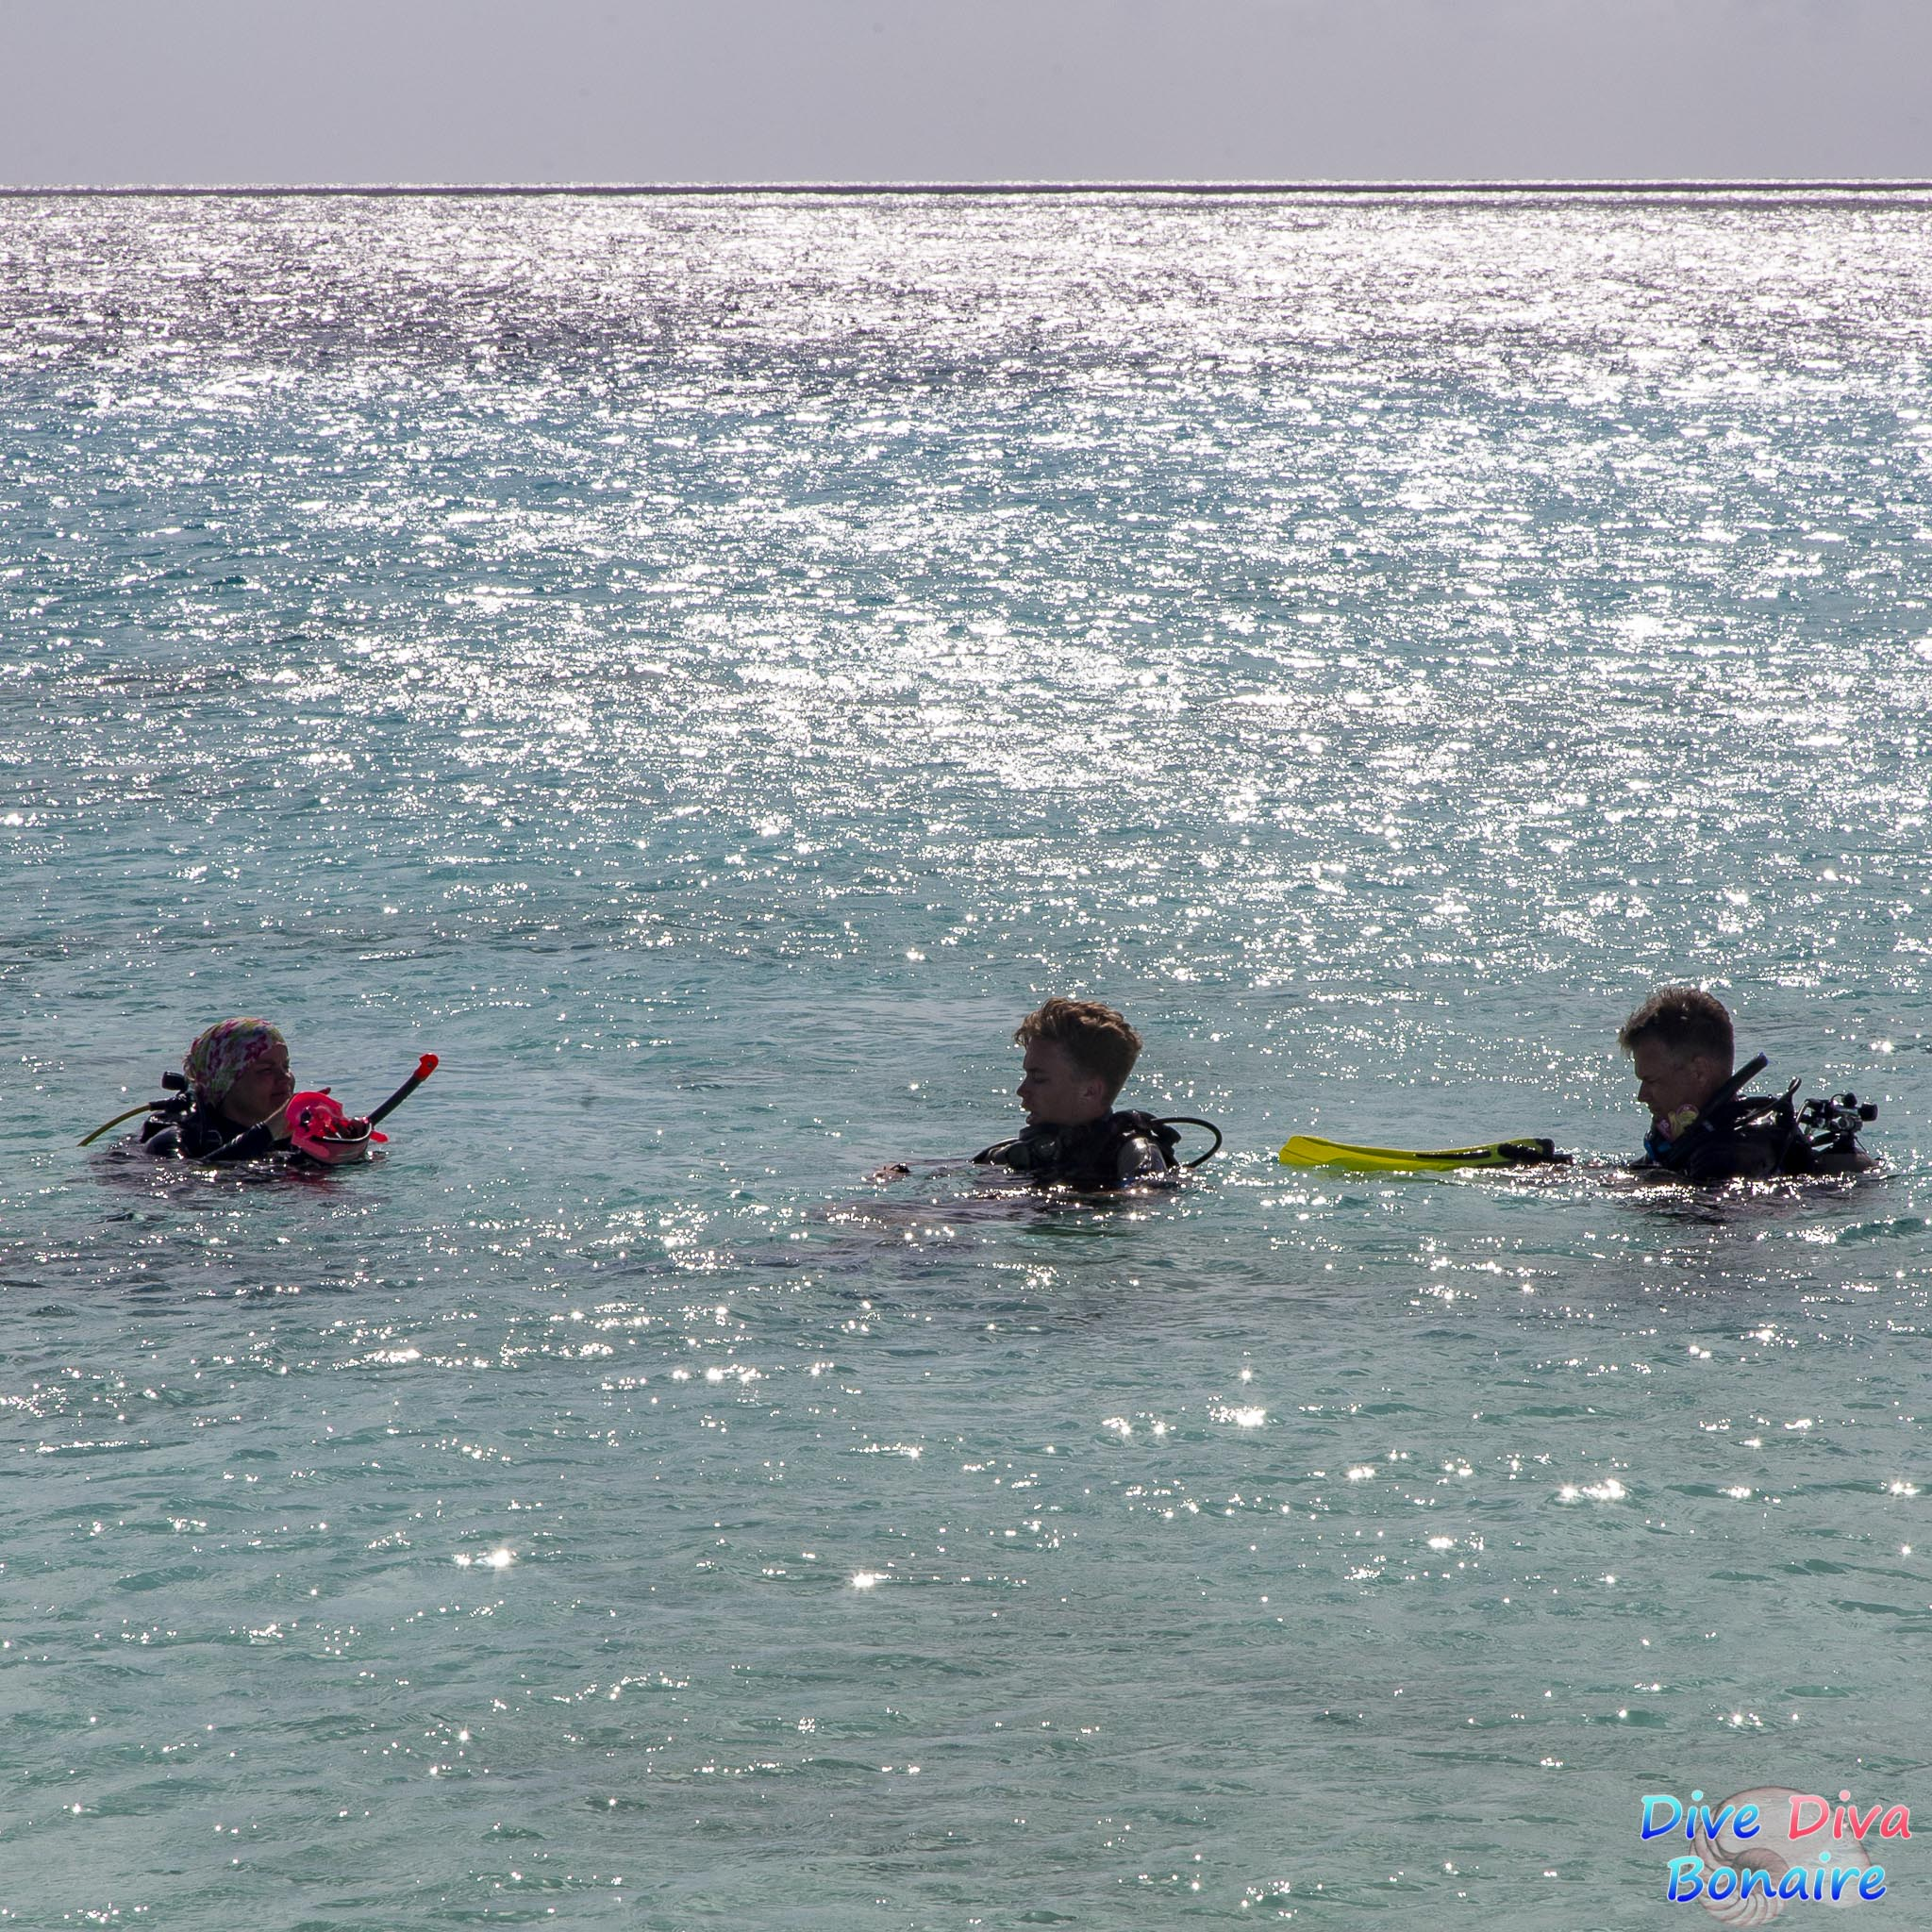 Dive Diva Bonaire - Diving Open water course Aquarius